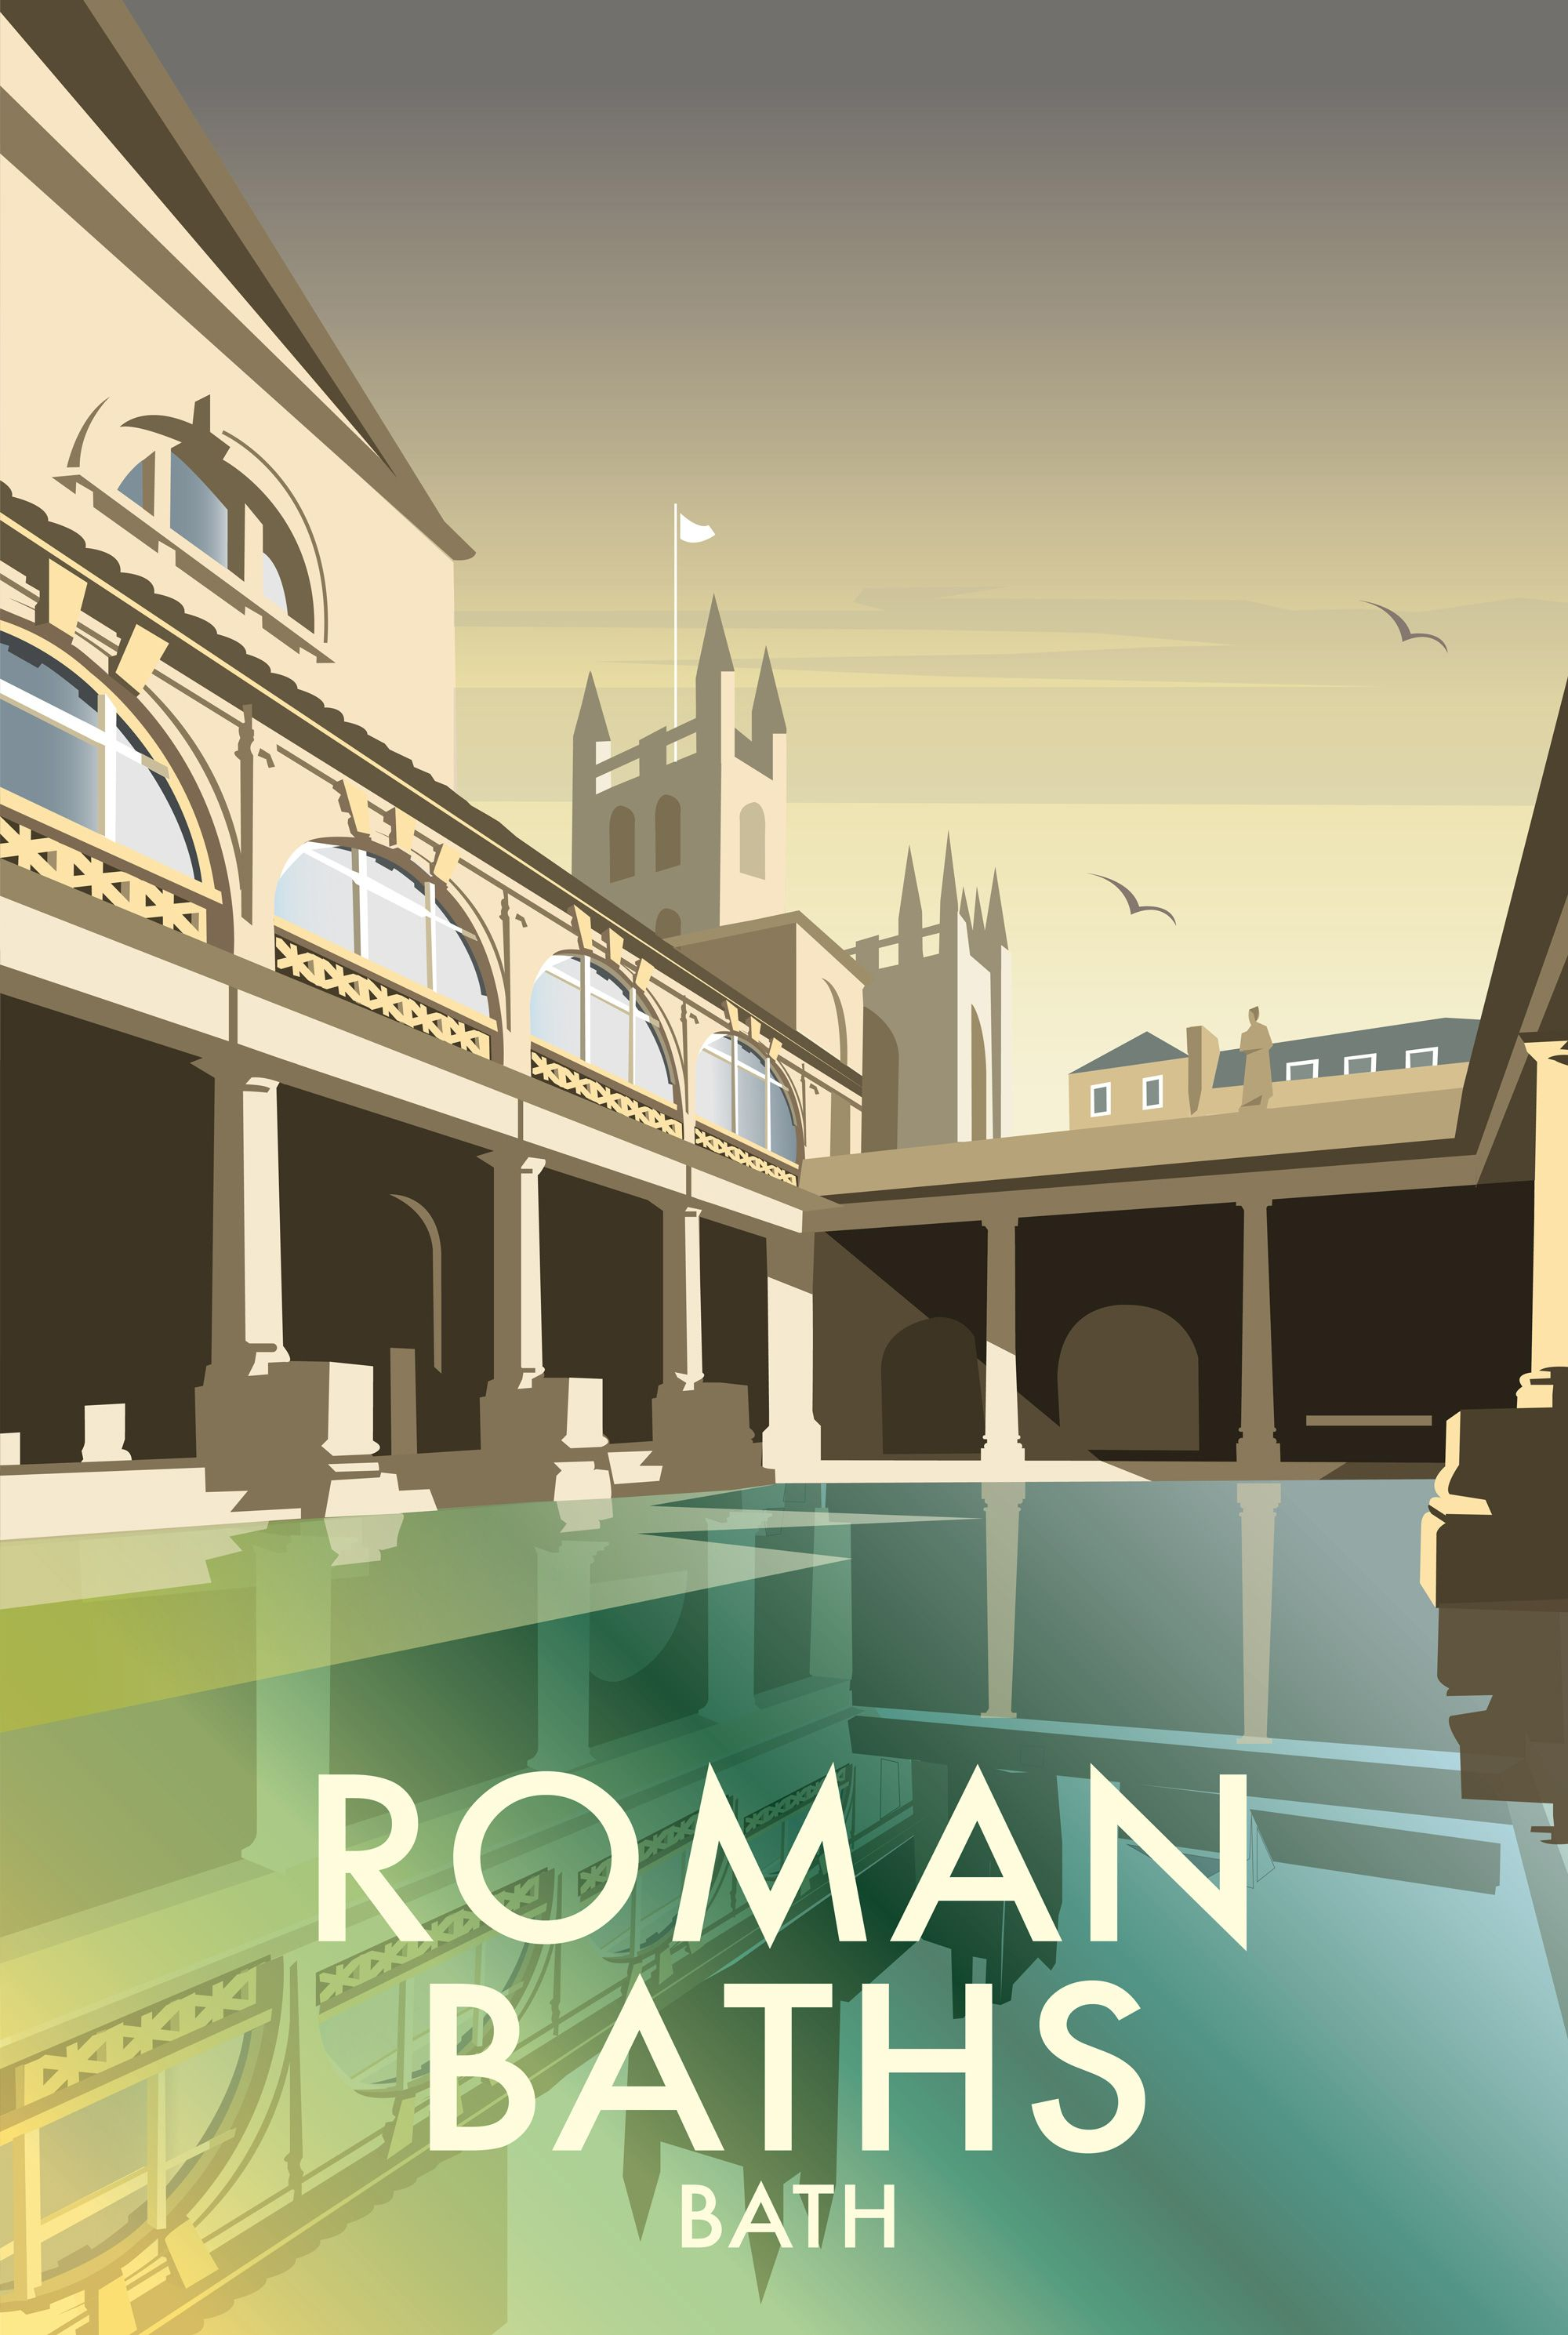 roman baths dt43f town city print by dave thompson www. Black Bedroom Furniture Sets. Home Design Ideas